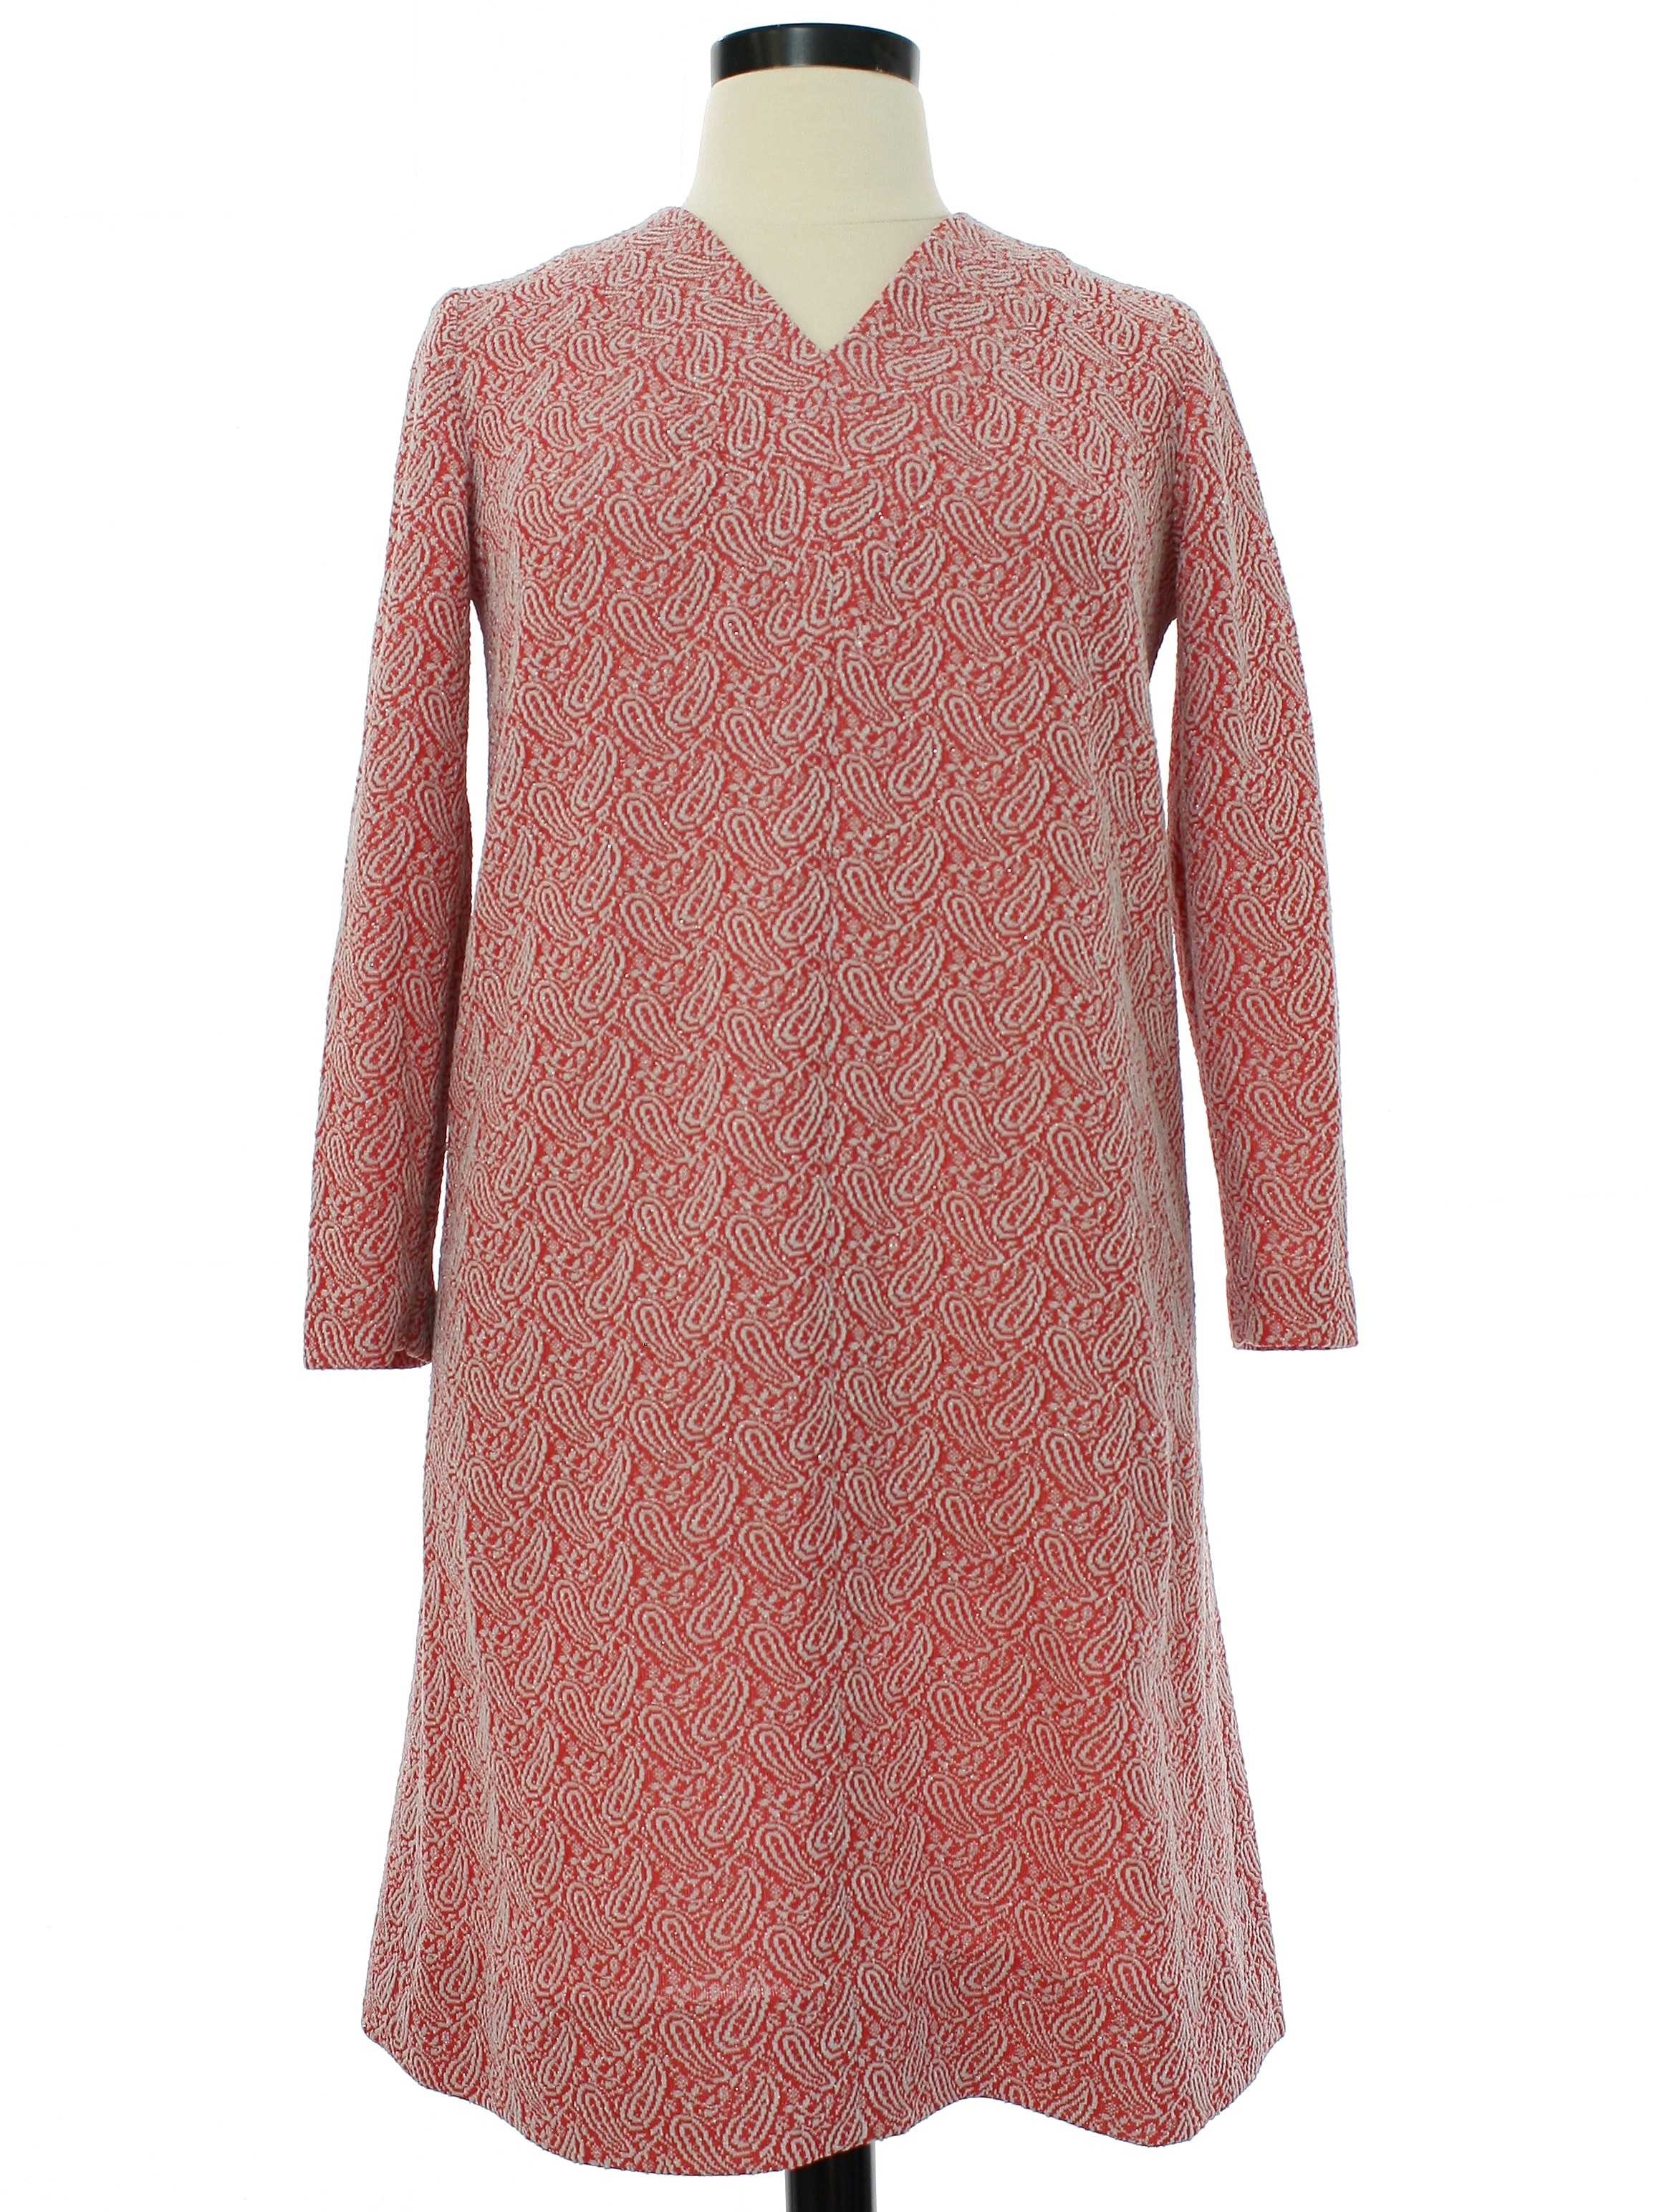 Handmade Pink Pull Over Button Bodice Cap Sleeve Dress Zippered Back Sz ML Mid Century Mod Stay At Home Worker Urban Suburb Mad Men Retro